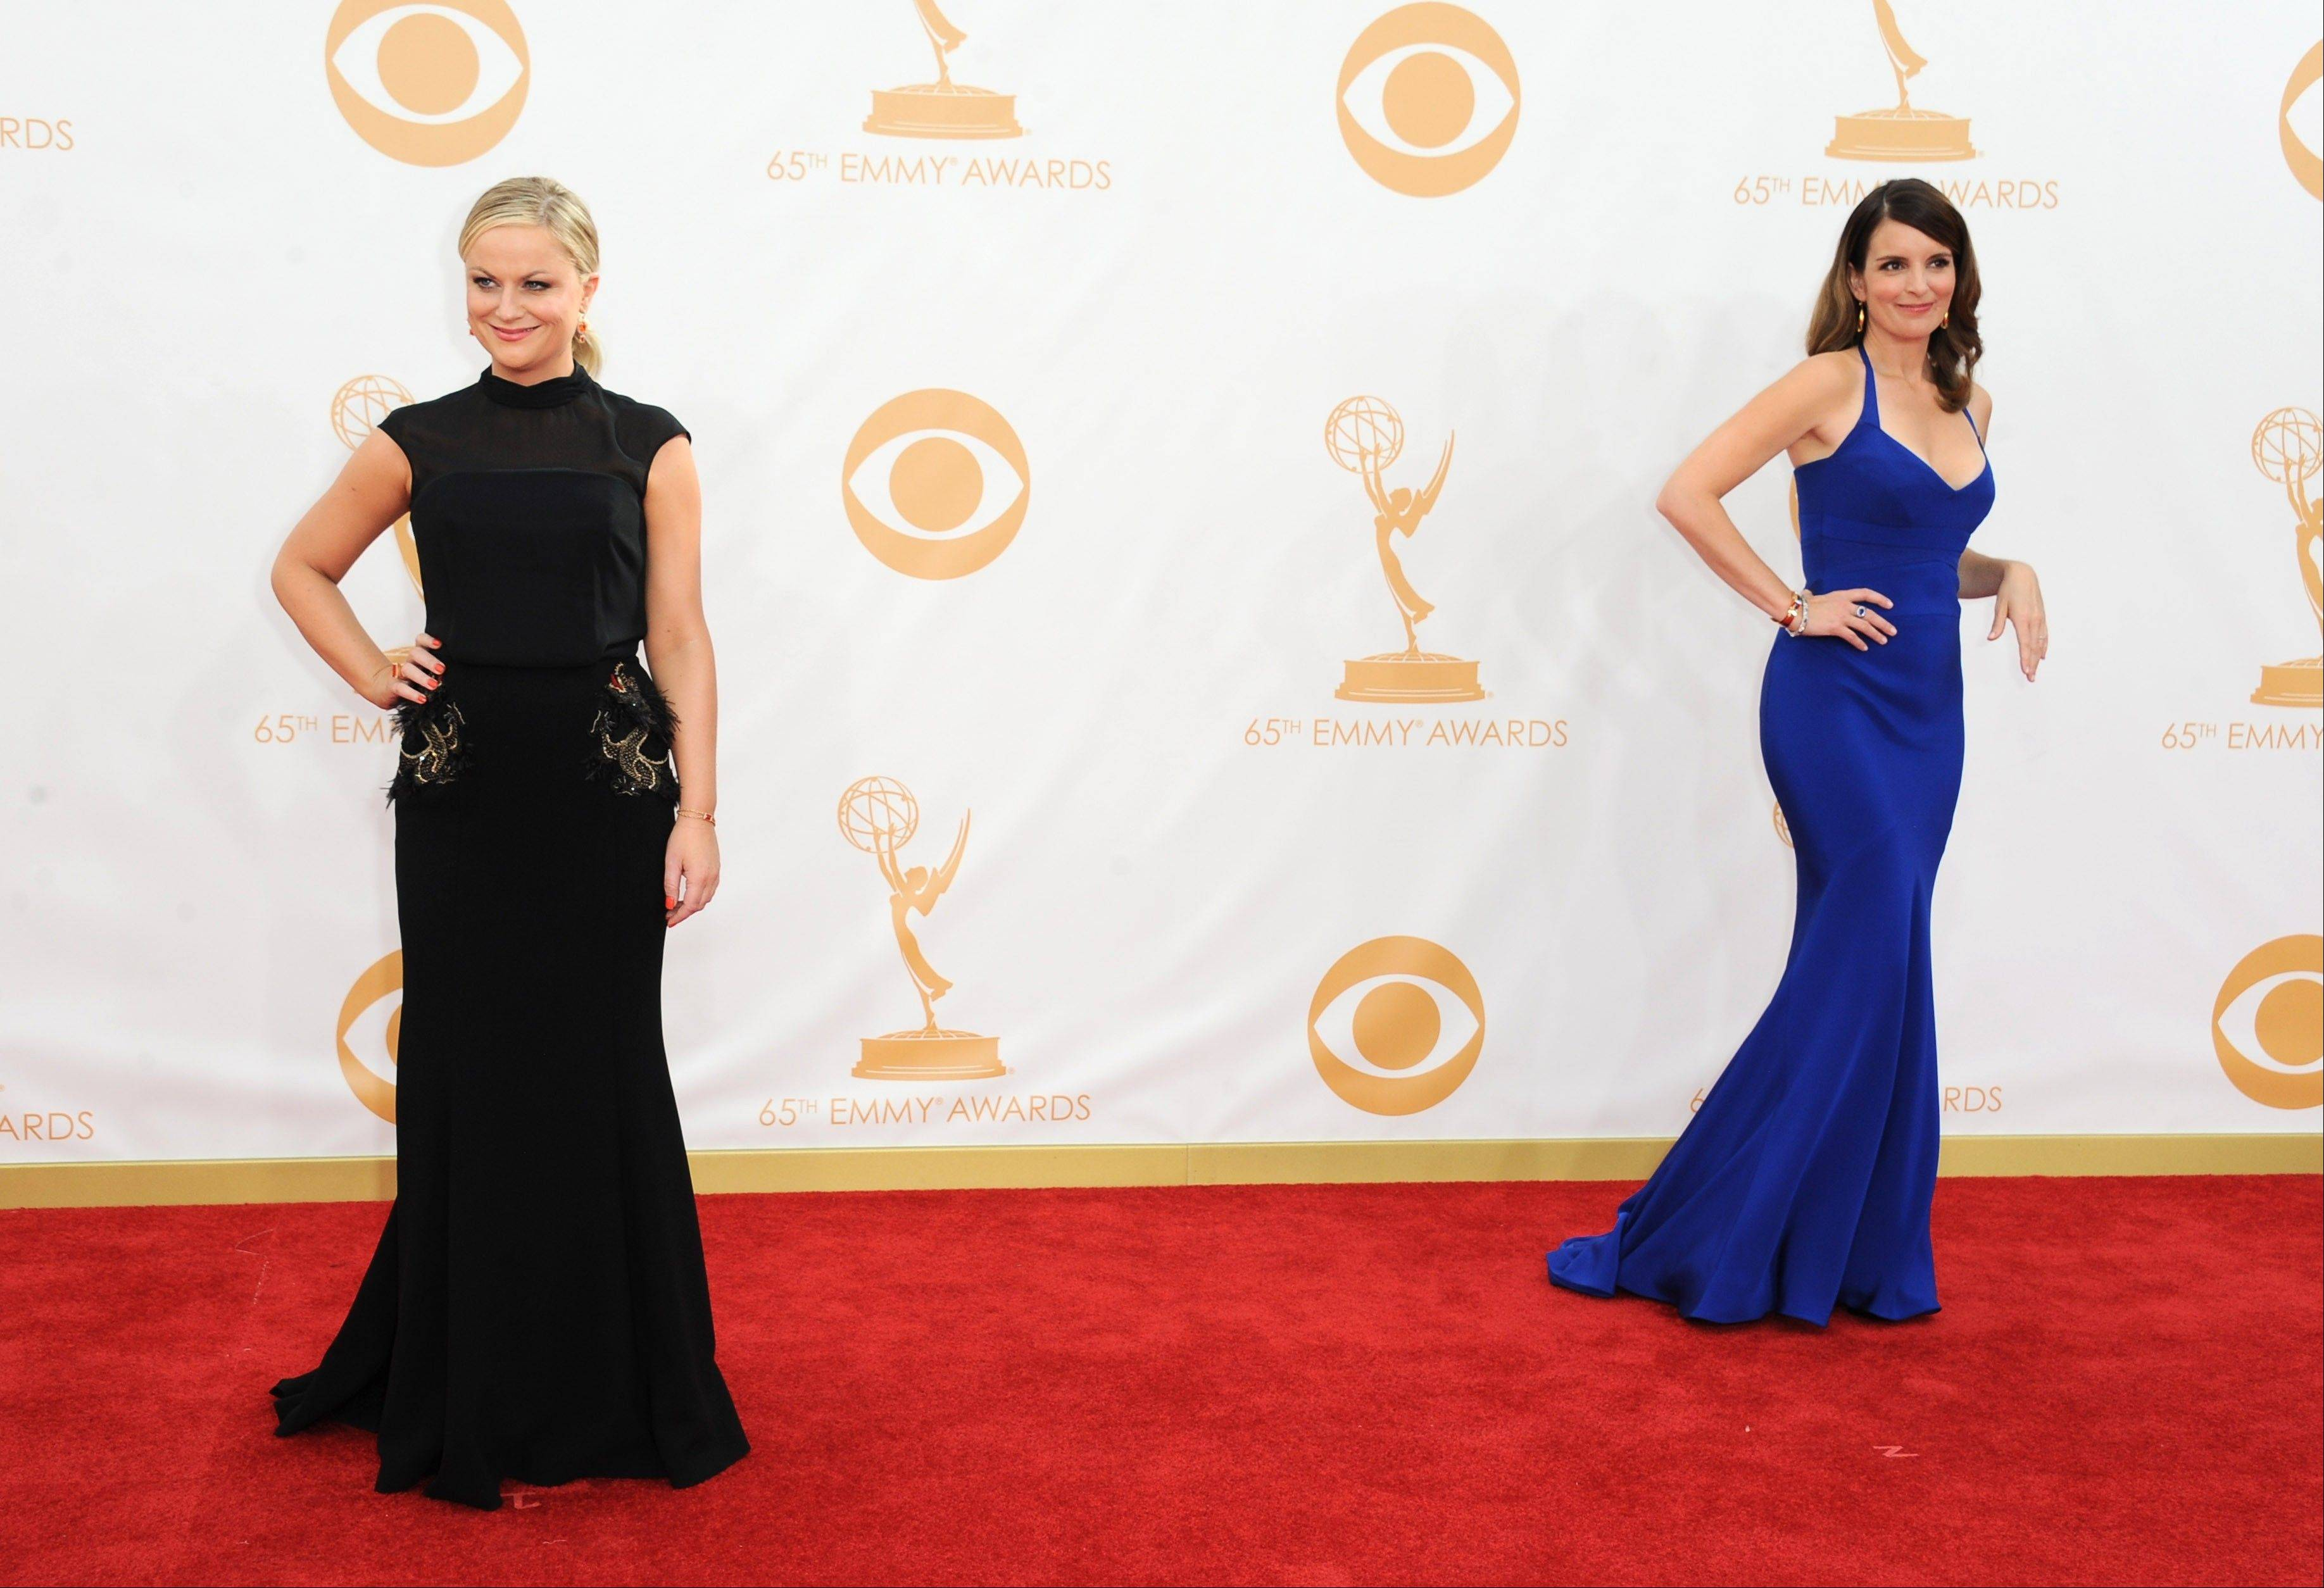 Amy Poehler, wearing Brian Rennie for Basler, left, and Tina Fey, wearing Narciso Rodriguez, arrive at the 65th Primetime Emmy Awards at Nokia Theatre on Sunday in Los Angeles.